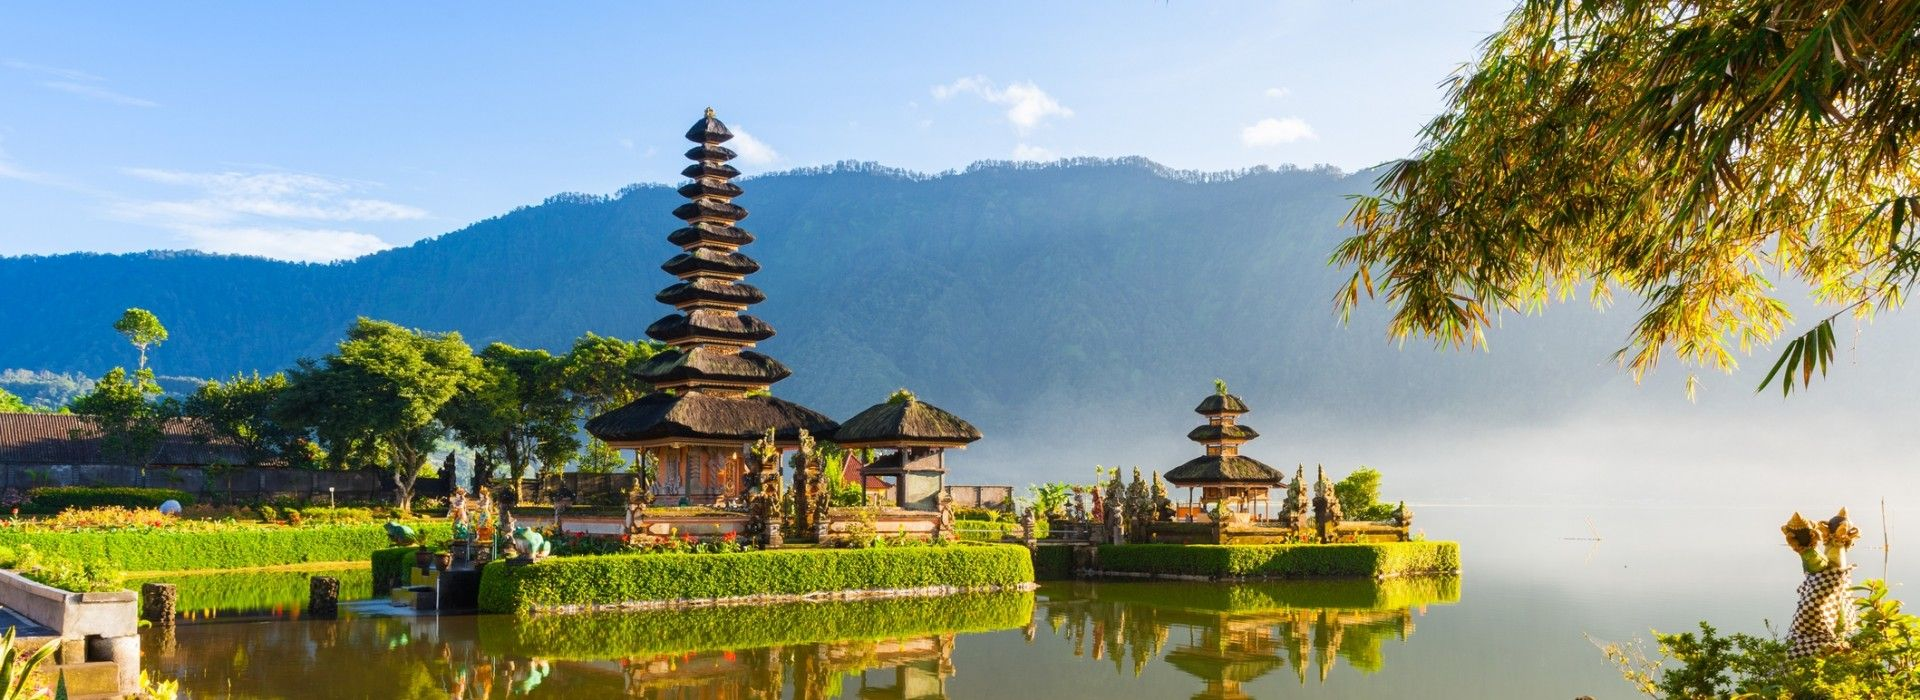 Food tours in Bali